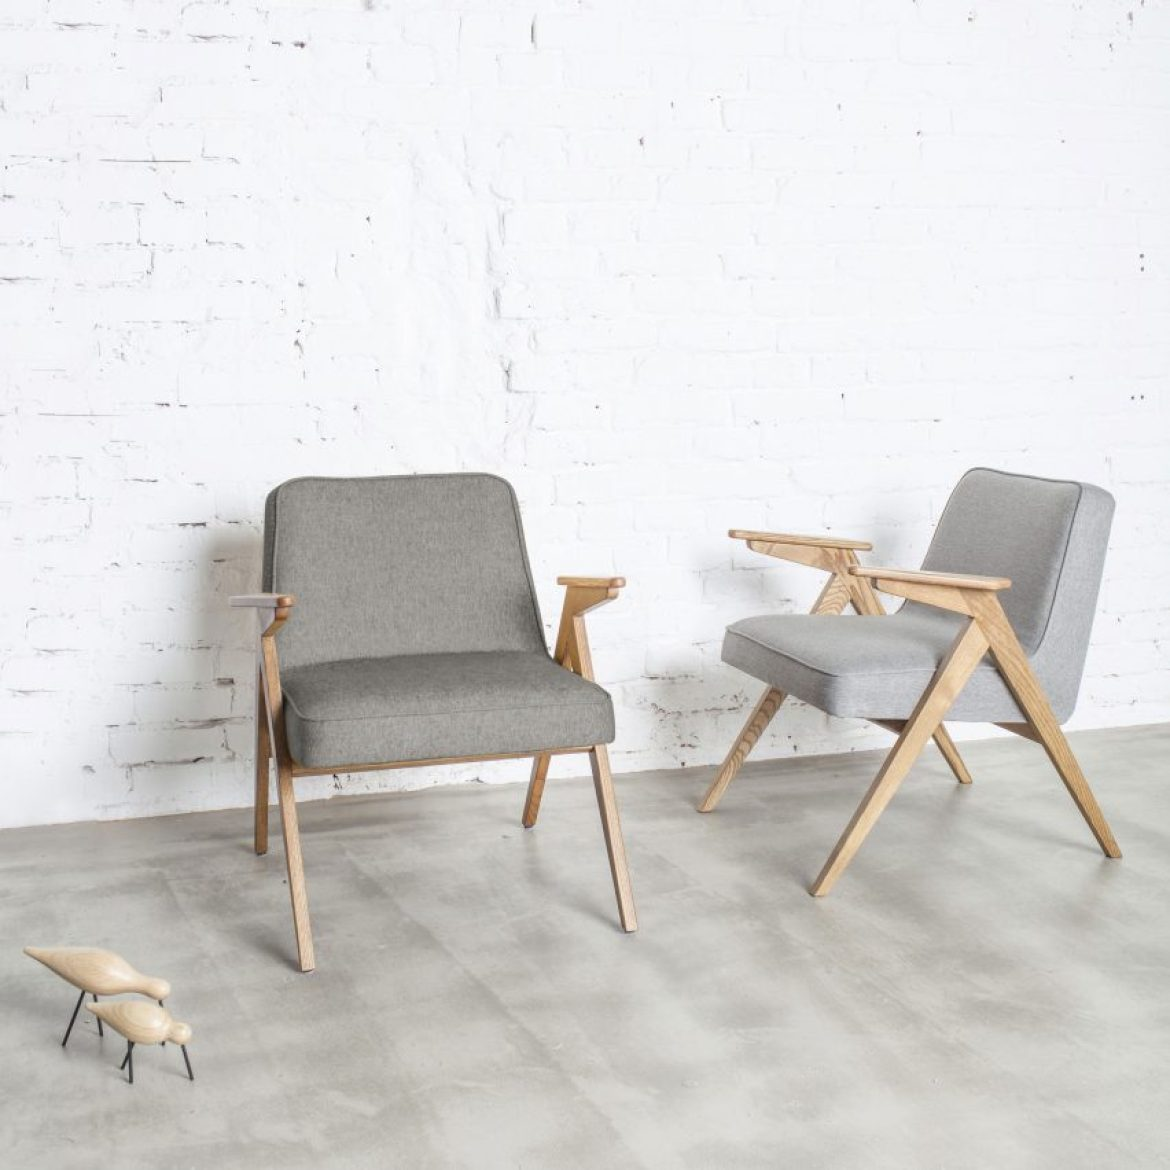 christmas-furniture-reissue-design-polish-furniture-reissues-366-concept-chair_dezeen_sq